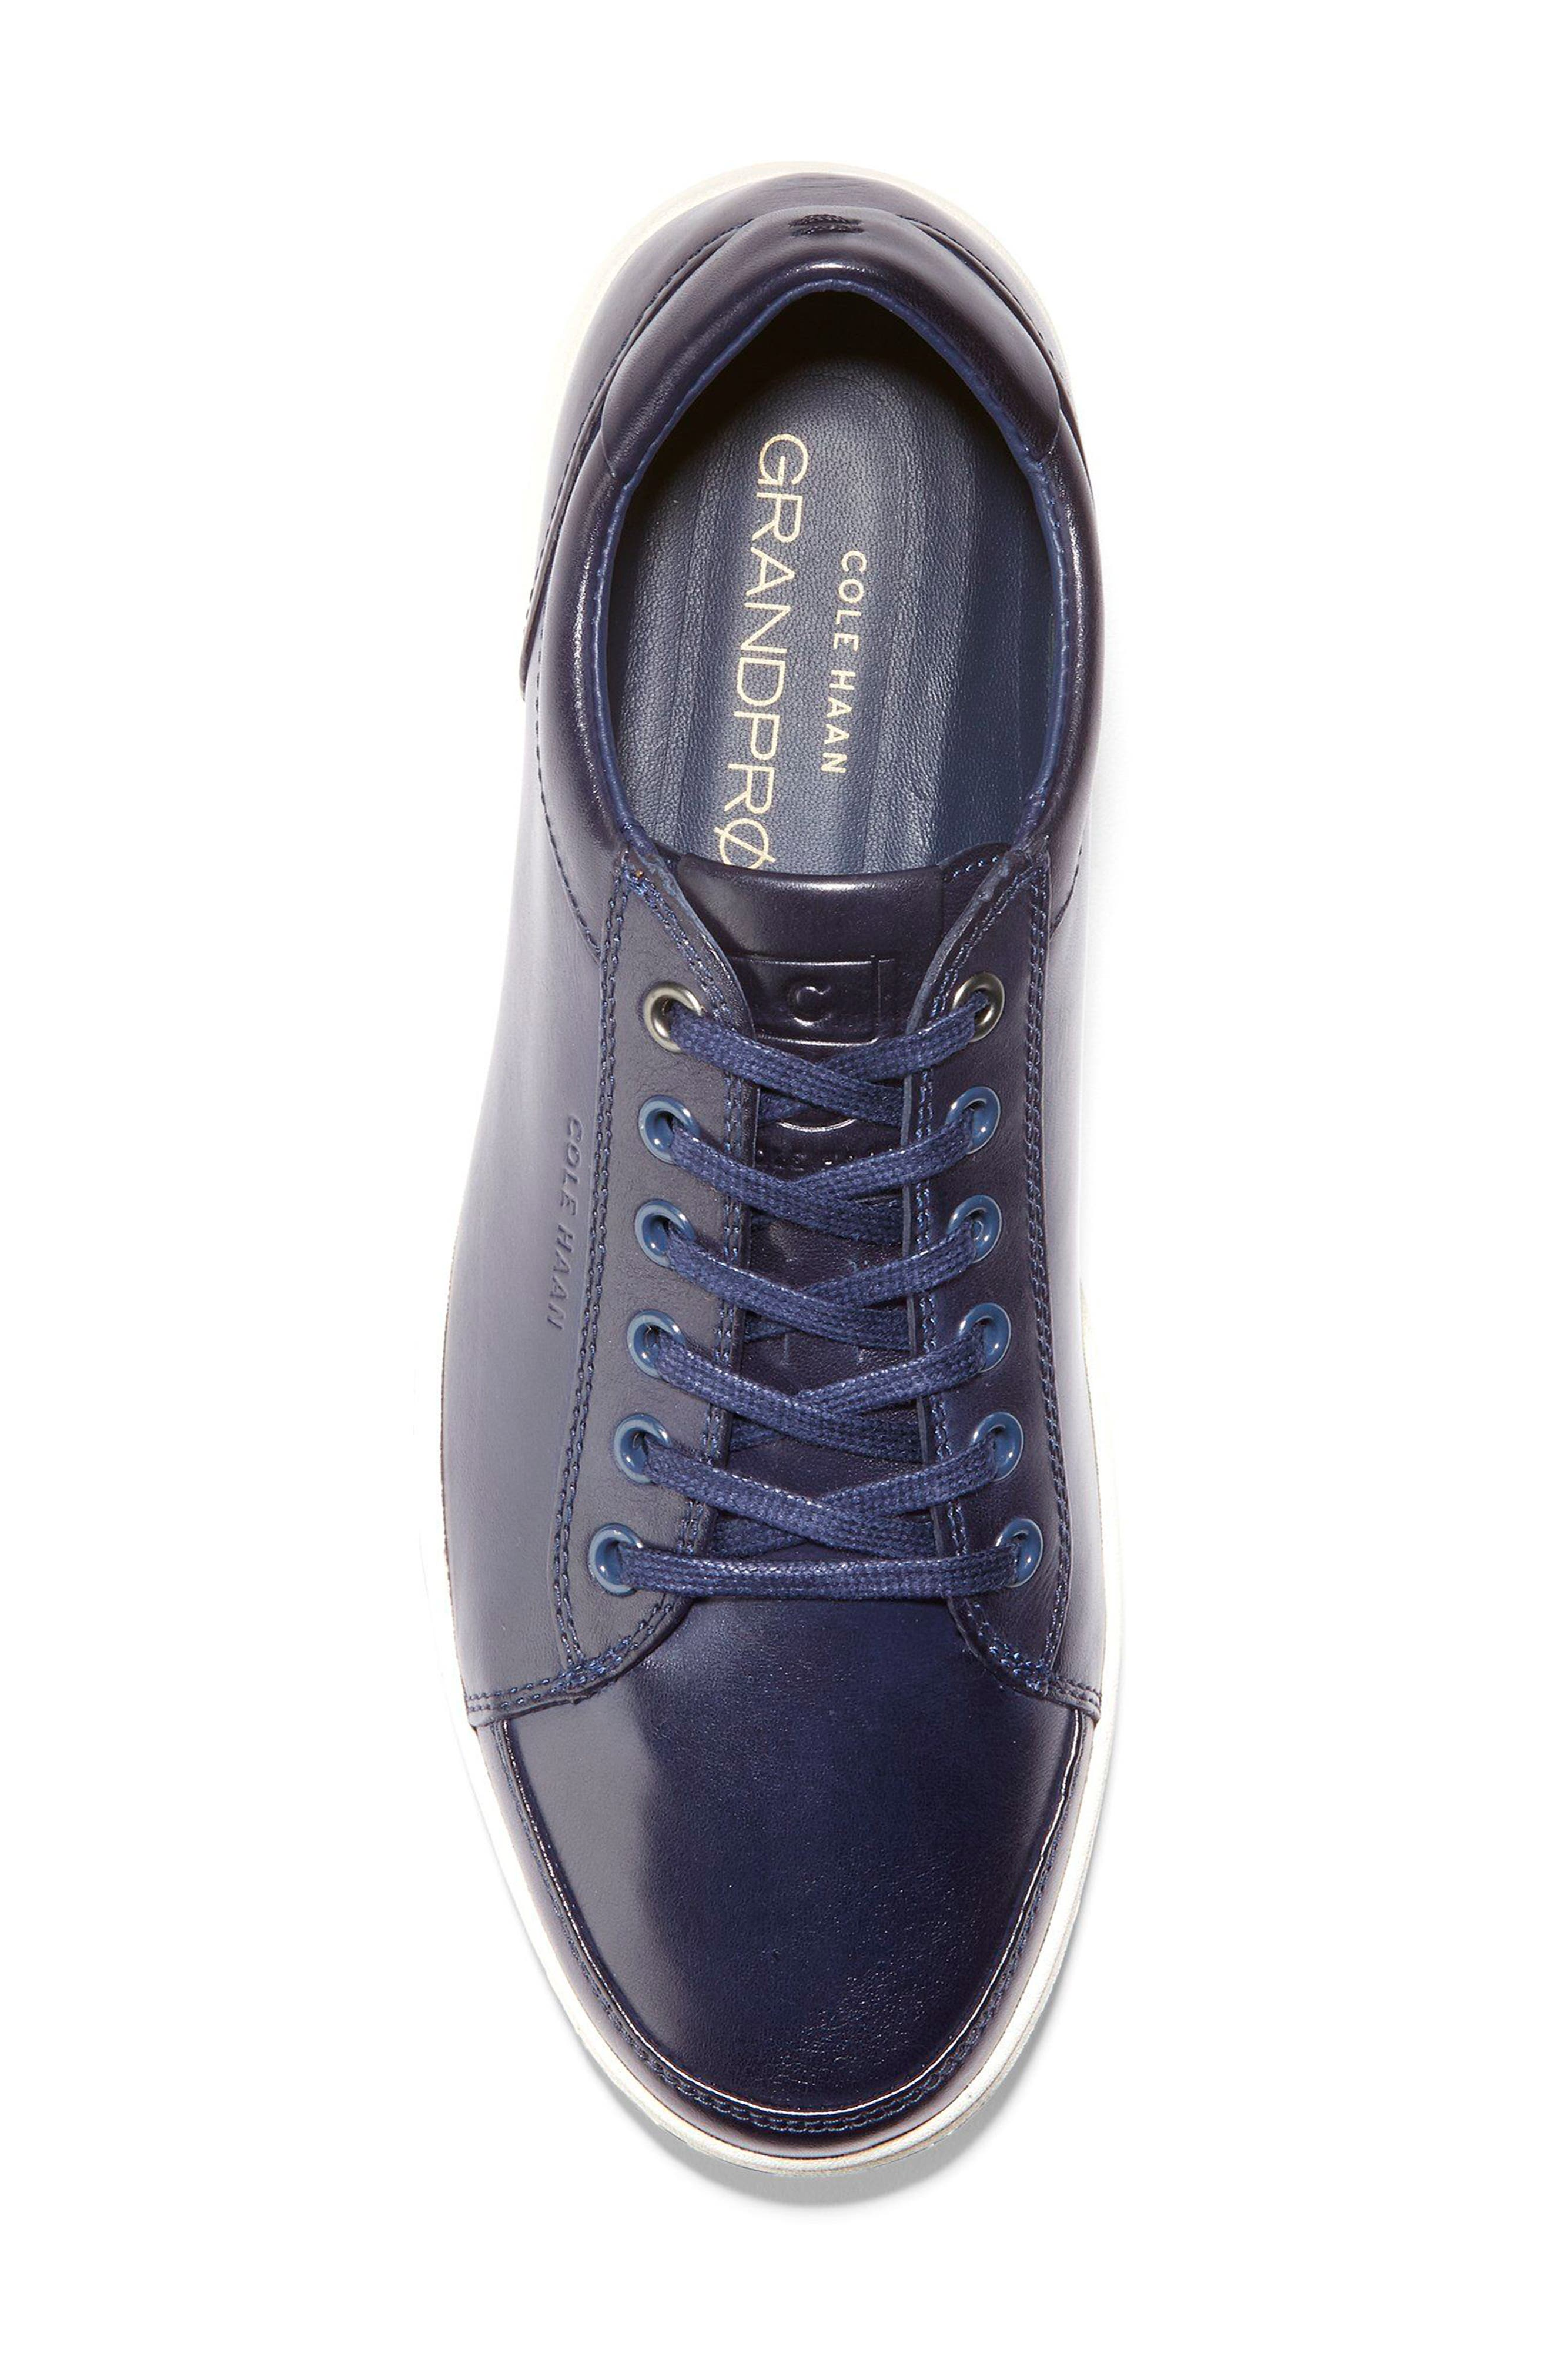 GrandPro Spectator Sneaker,                             Alternate thumbnail 5, color,                             BLAZER BLUE HANDSTAIN LEATHER